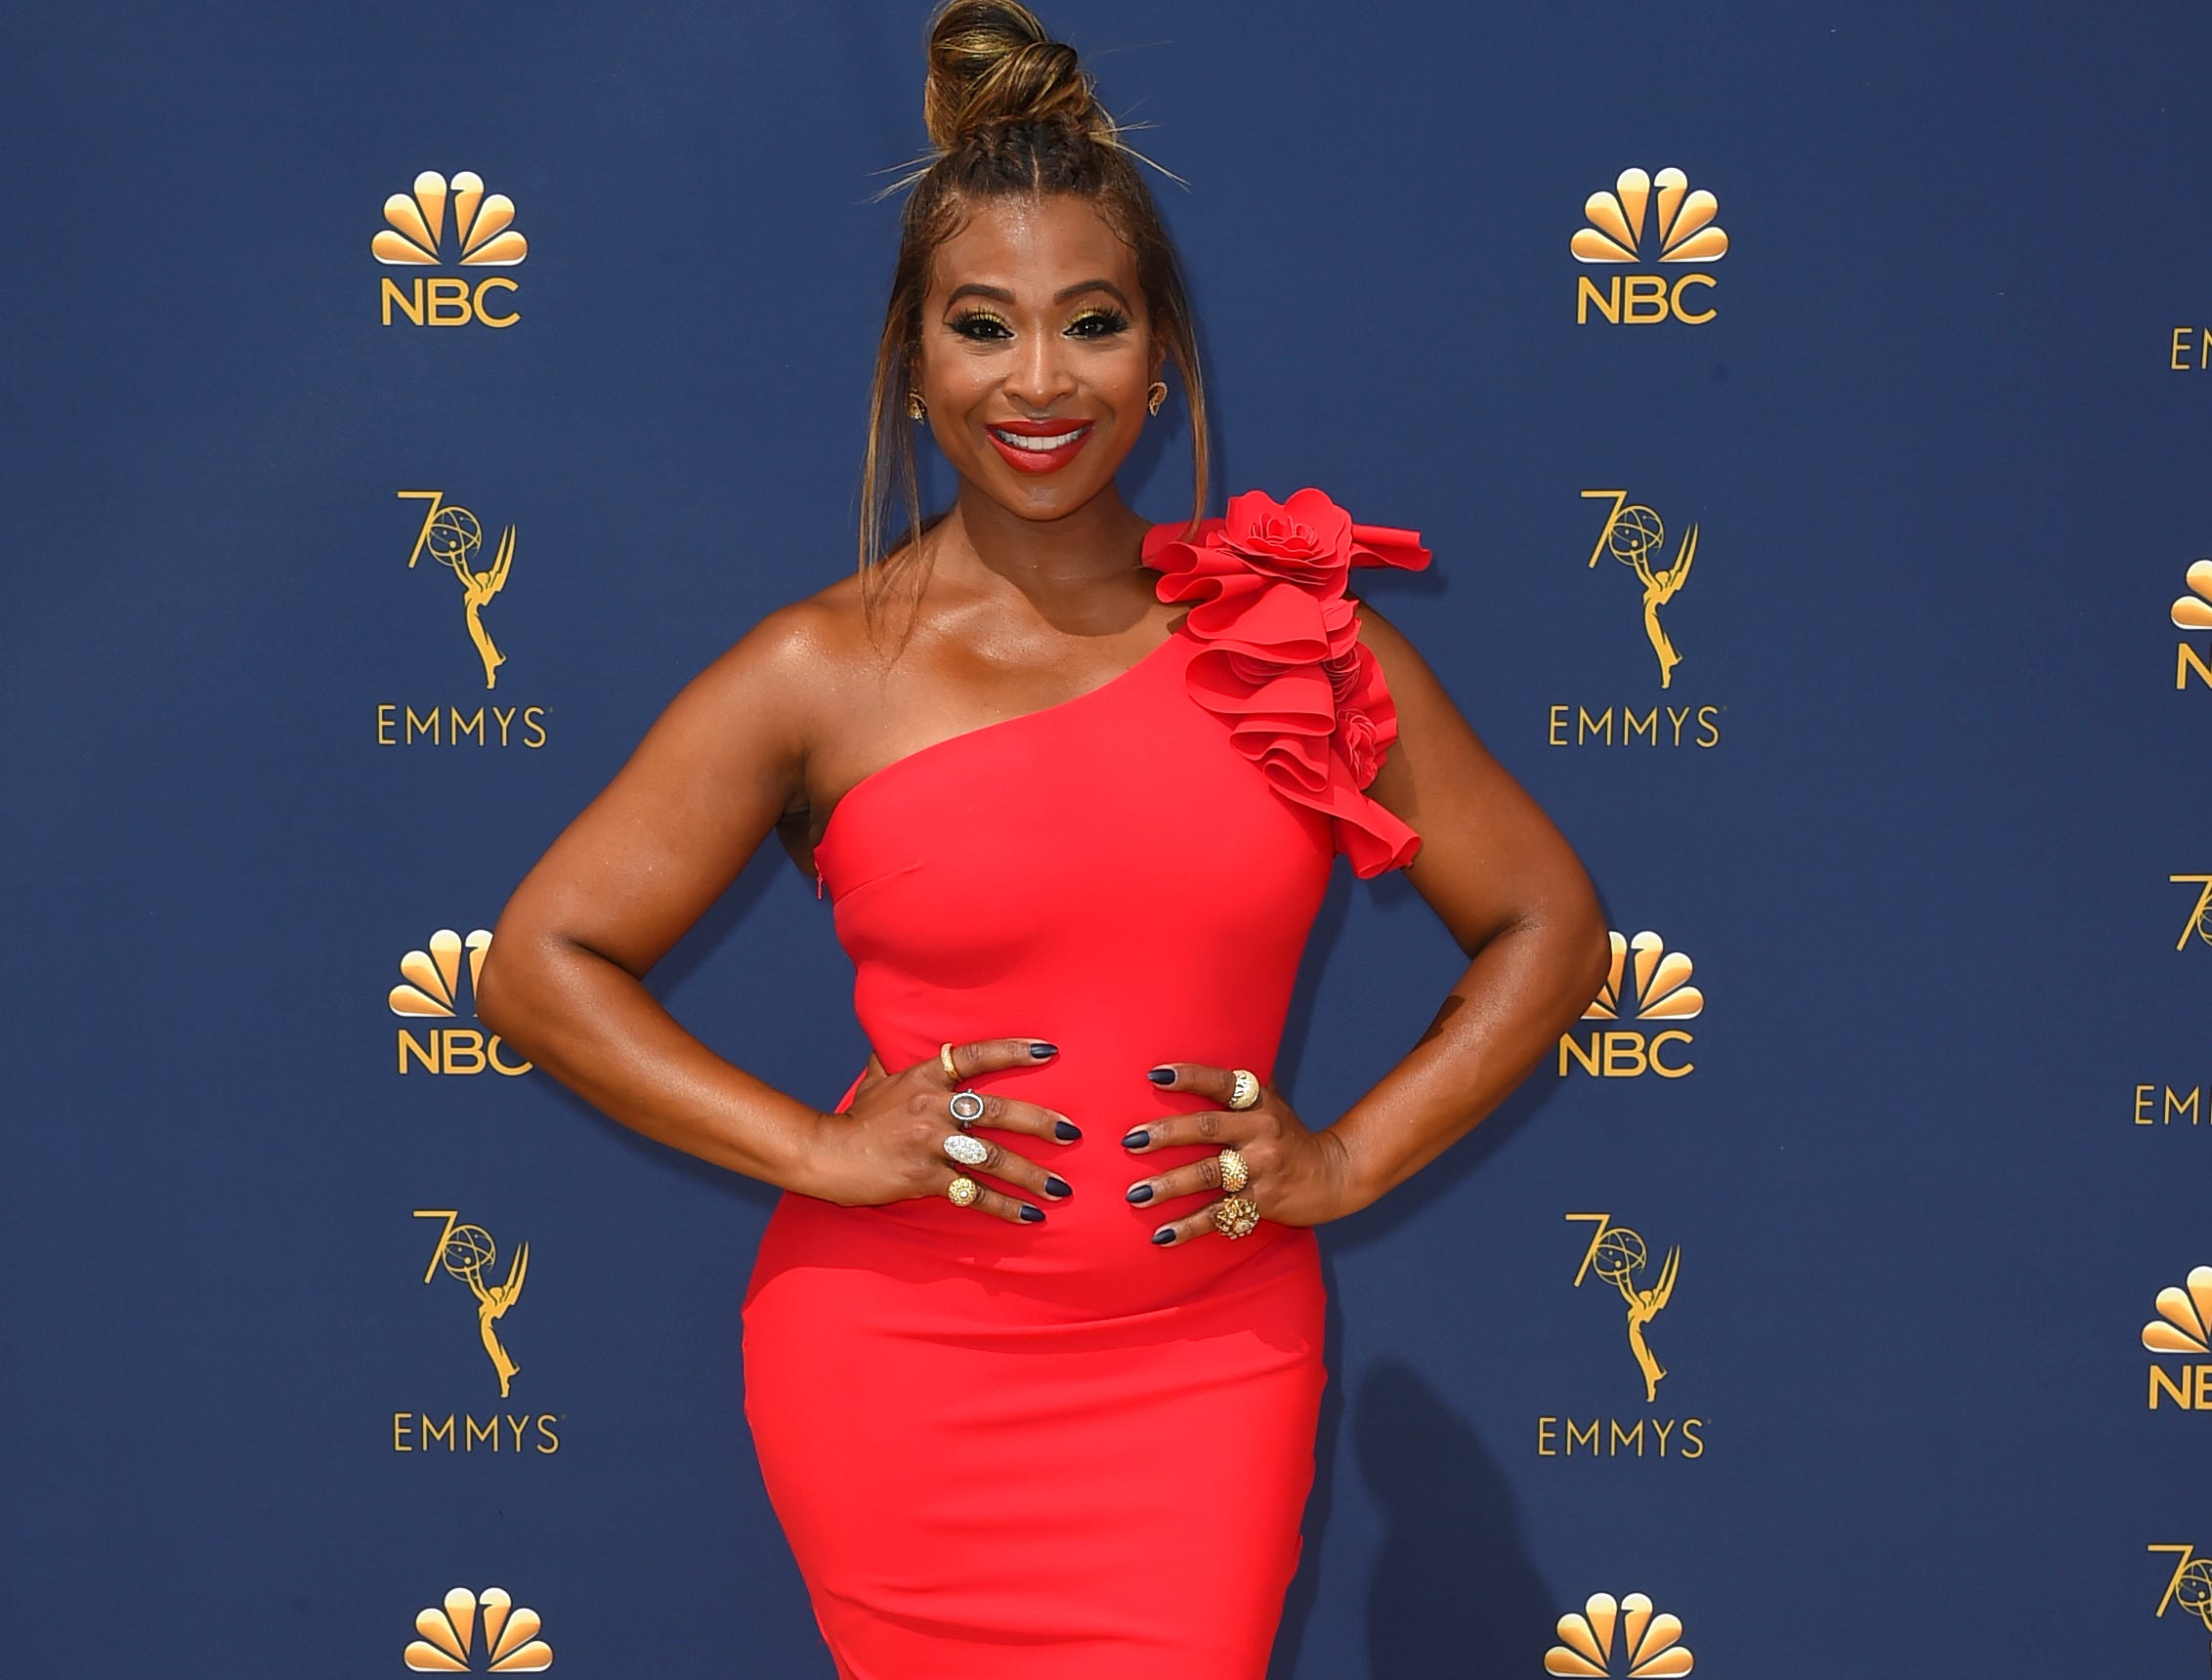 Tanika Ray arrives at the 70th Primetime Emmy Awards on Monday, Sept. 17, 2018, at the Microsoft Theater in Los Angeles.